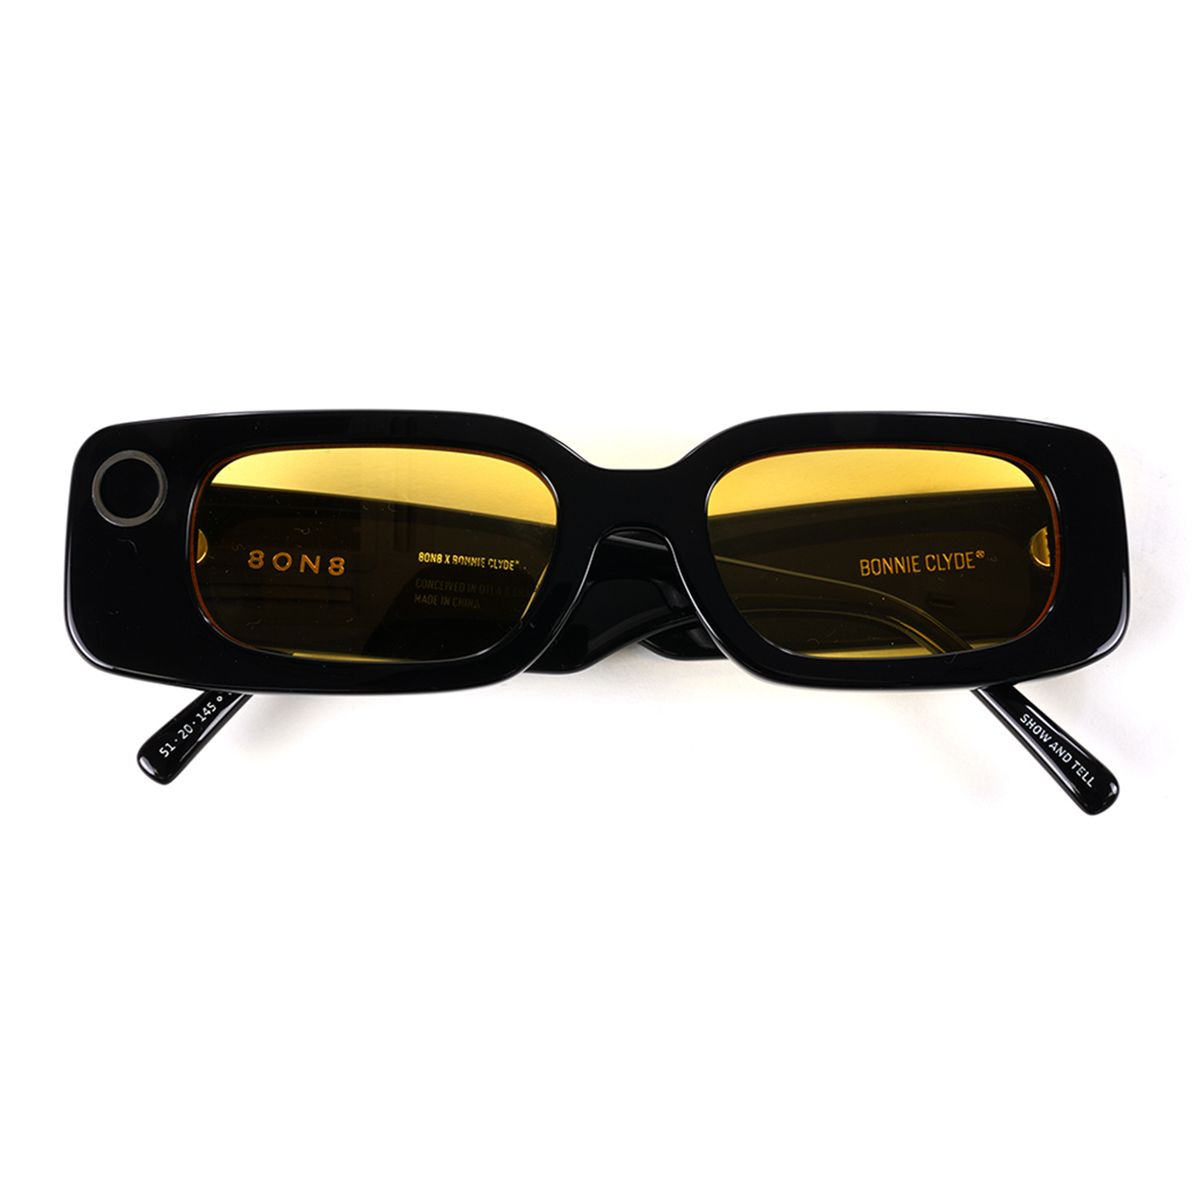 BONNIE CLYDE EYEWEAR 8ON8 SHOW AND TELL / BLACK-YELLOW TINT